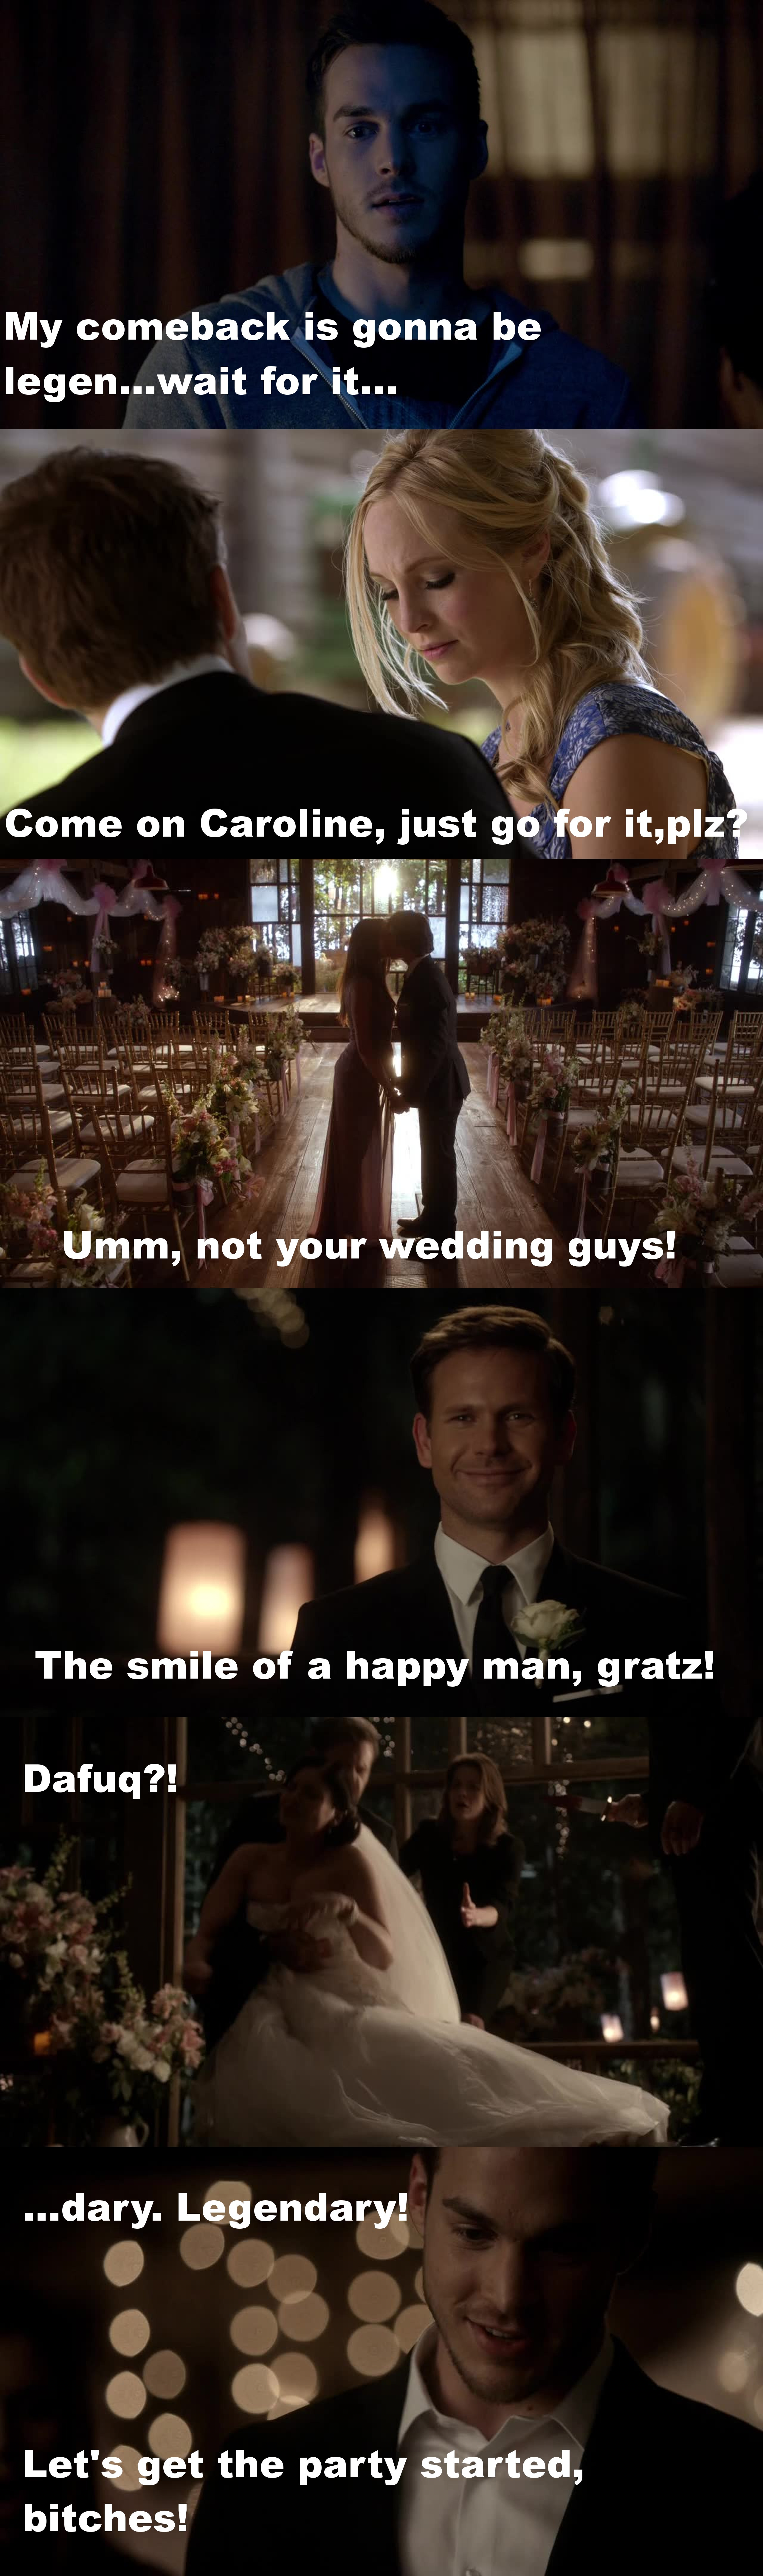 Well Kai was pretty great, just sad that he had to ruin the wedding. I liked seeing Alaric and Jo happy. Alaric is a great character and as one of the few humans on the show, he deserves happiness. Dammit, Bonnie! Your fault Kai is evil again!